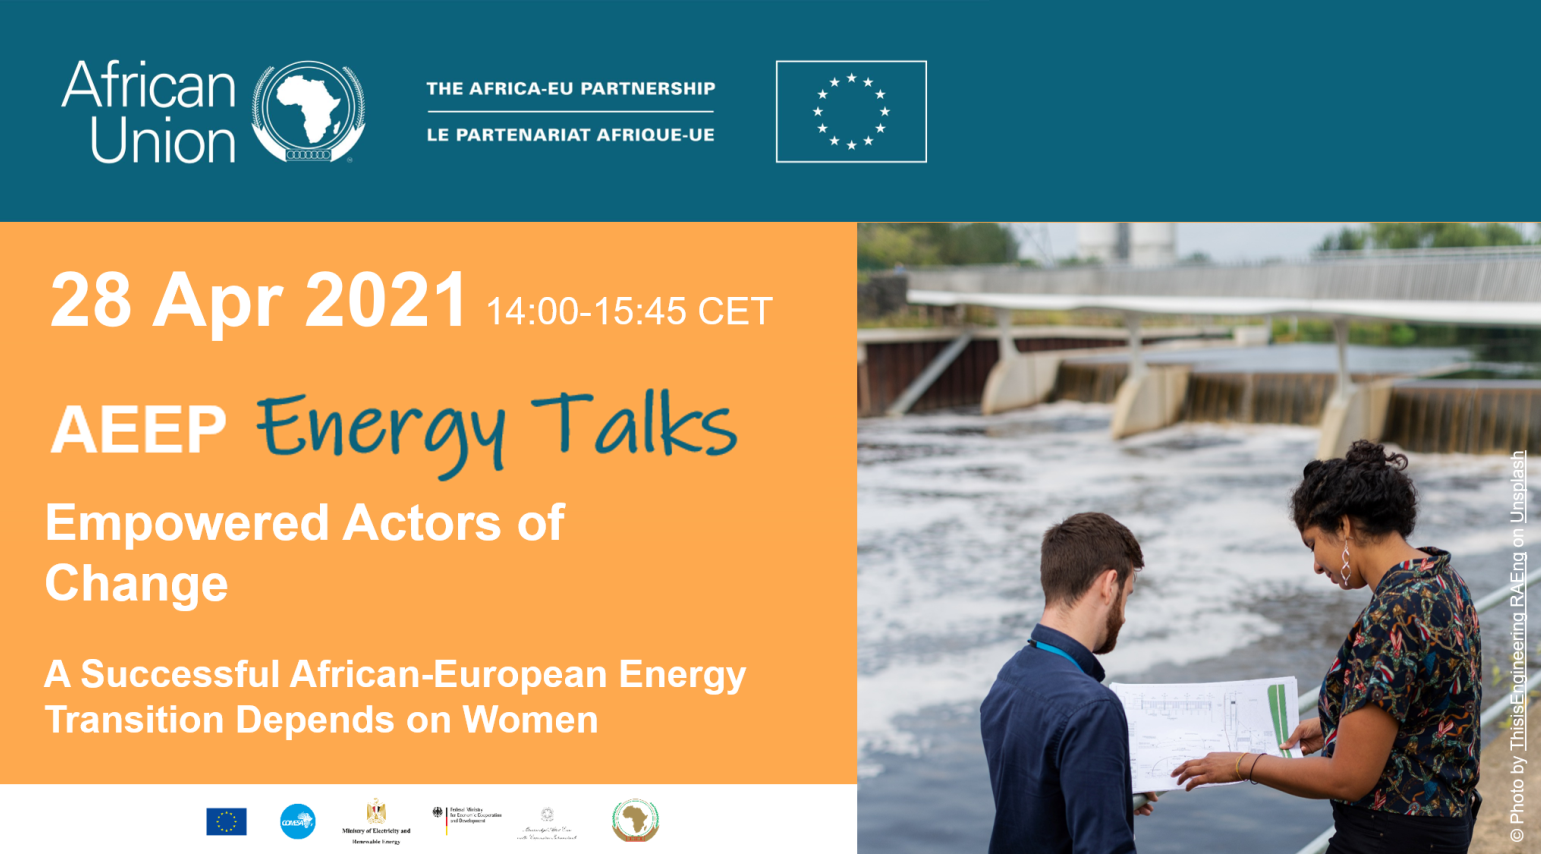 Webinar: AEEP Energy Talks – Empowered Actors of Change